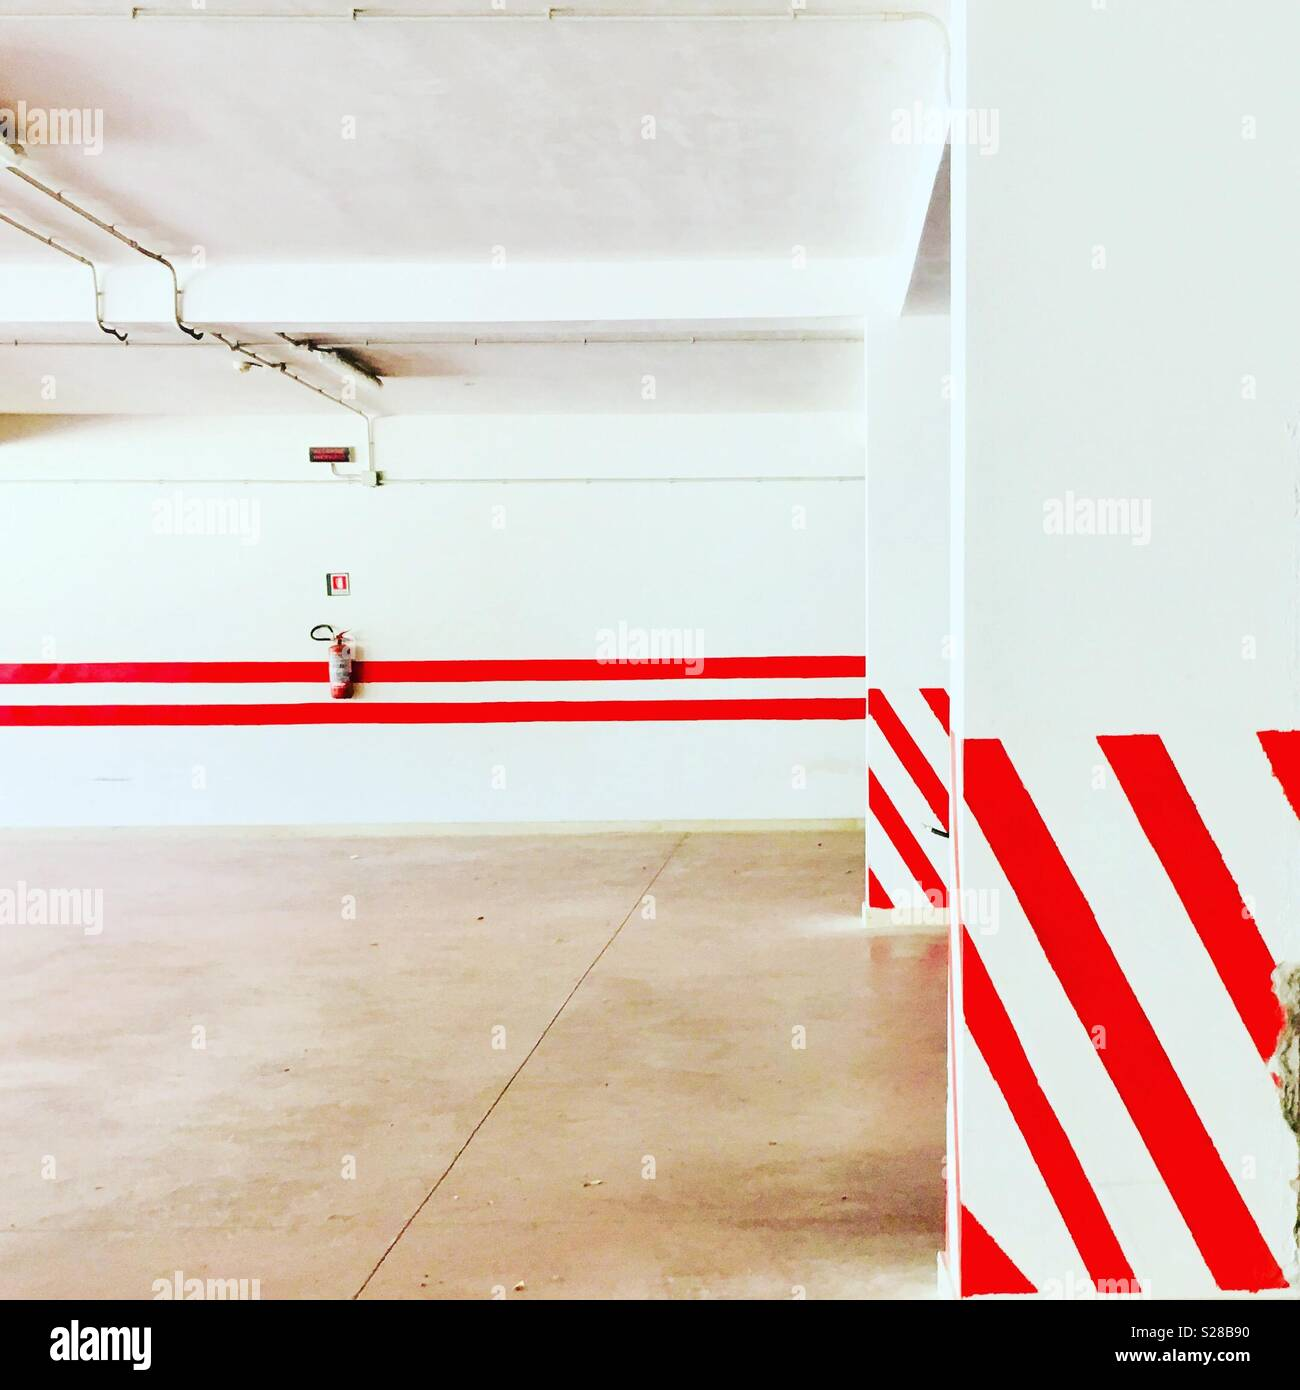 Garage with red stripes - Abstract - geometric - Stock Image